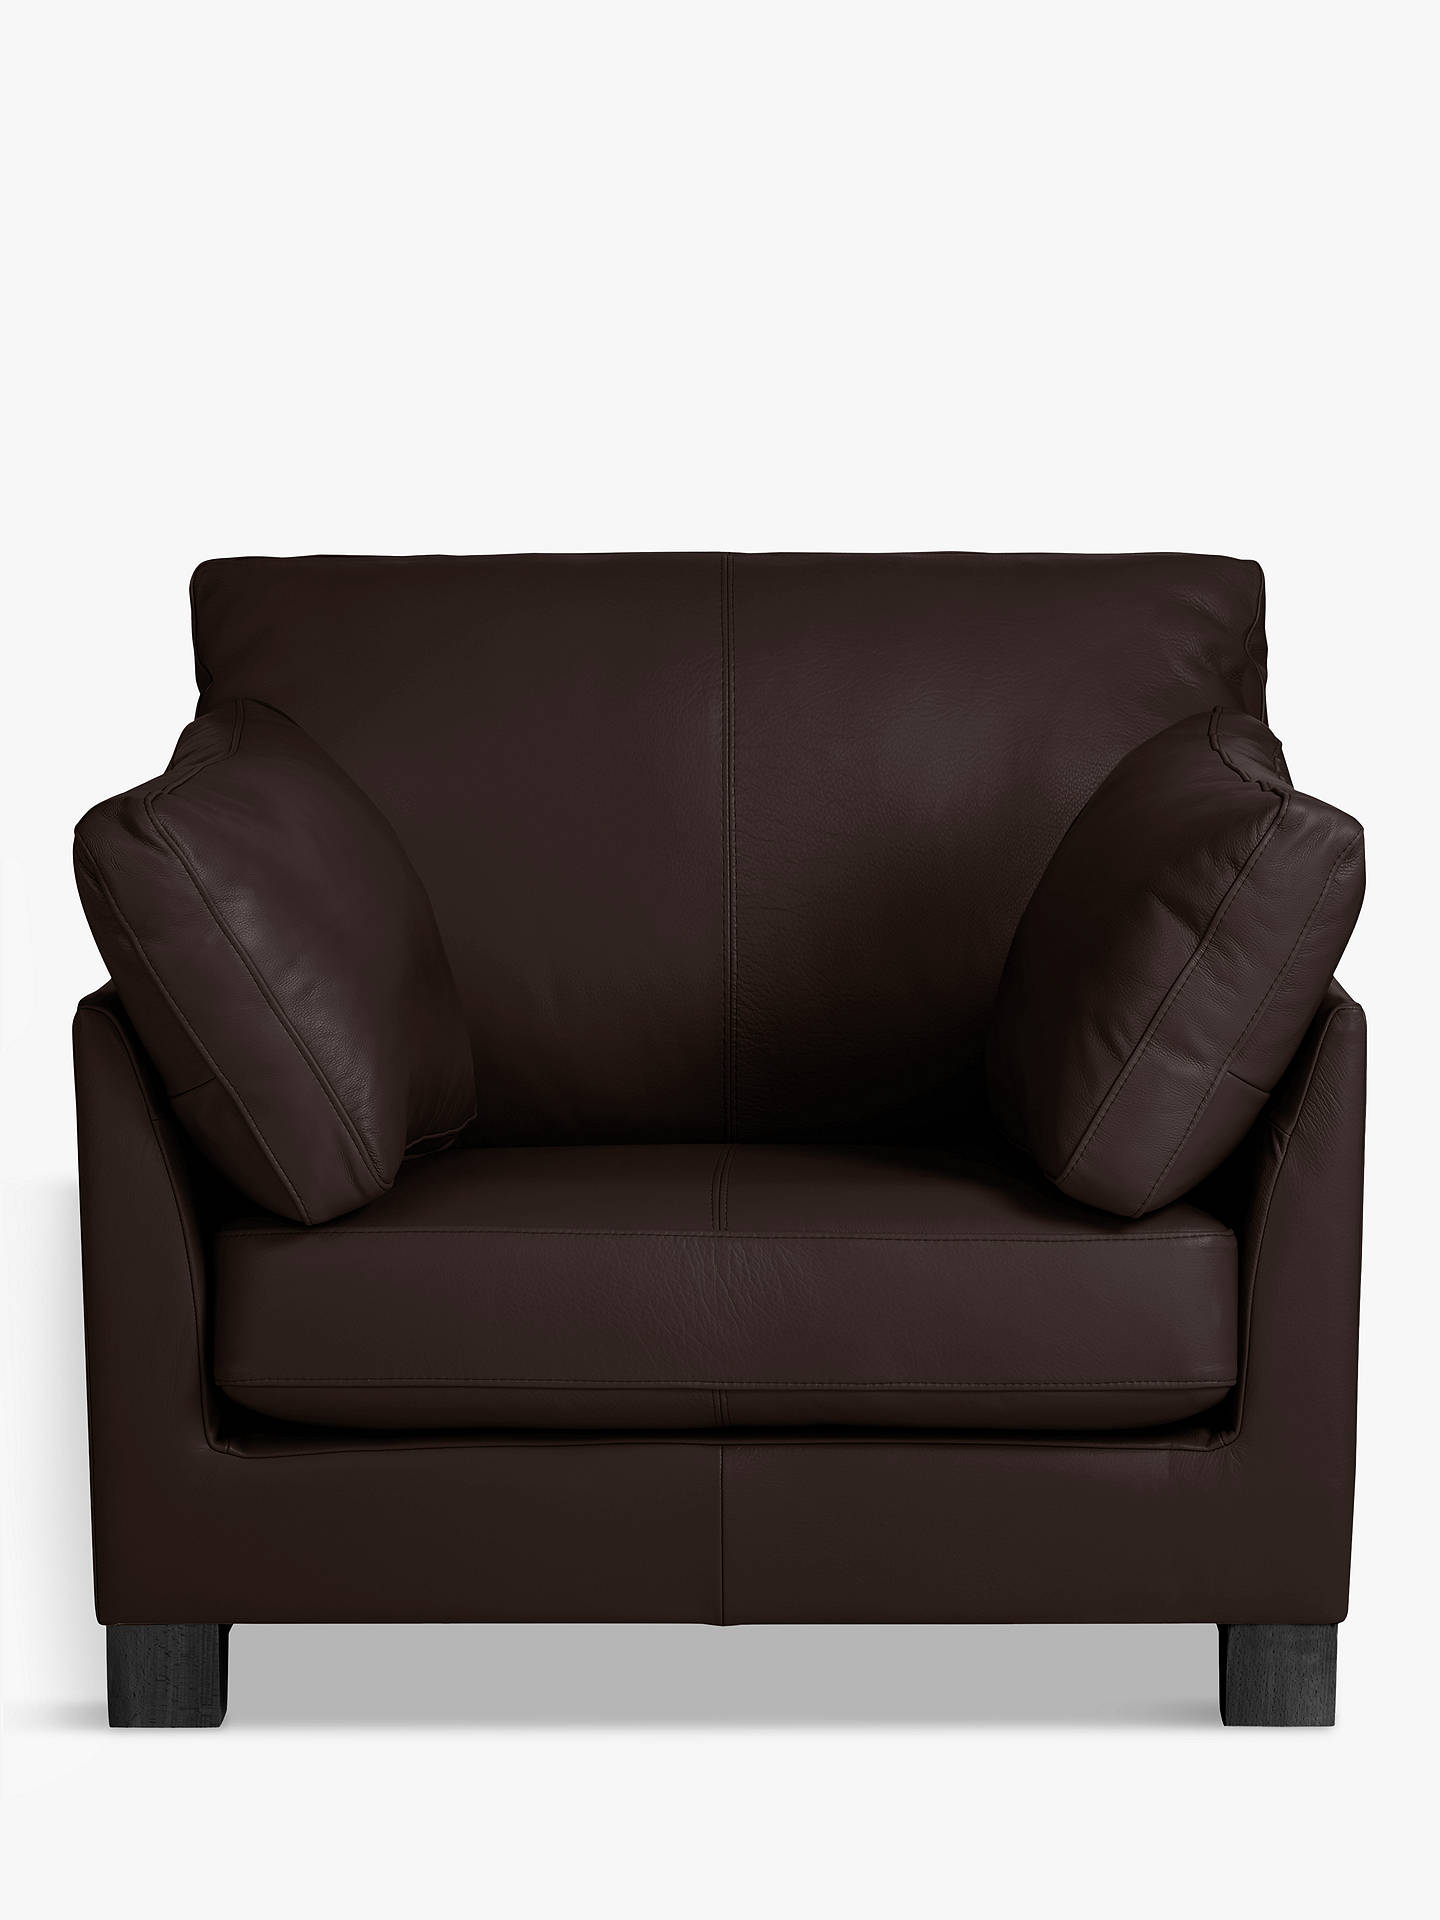 Buy John Lewis & Partners Ikon Leather Armchair, Dark Leg, Demetra Charcoal Online at johnlewis.com